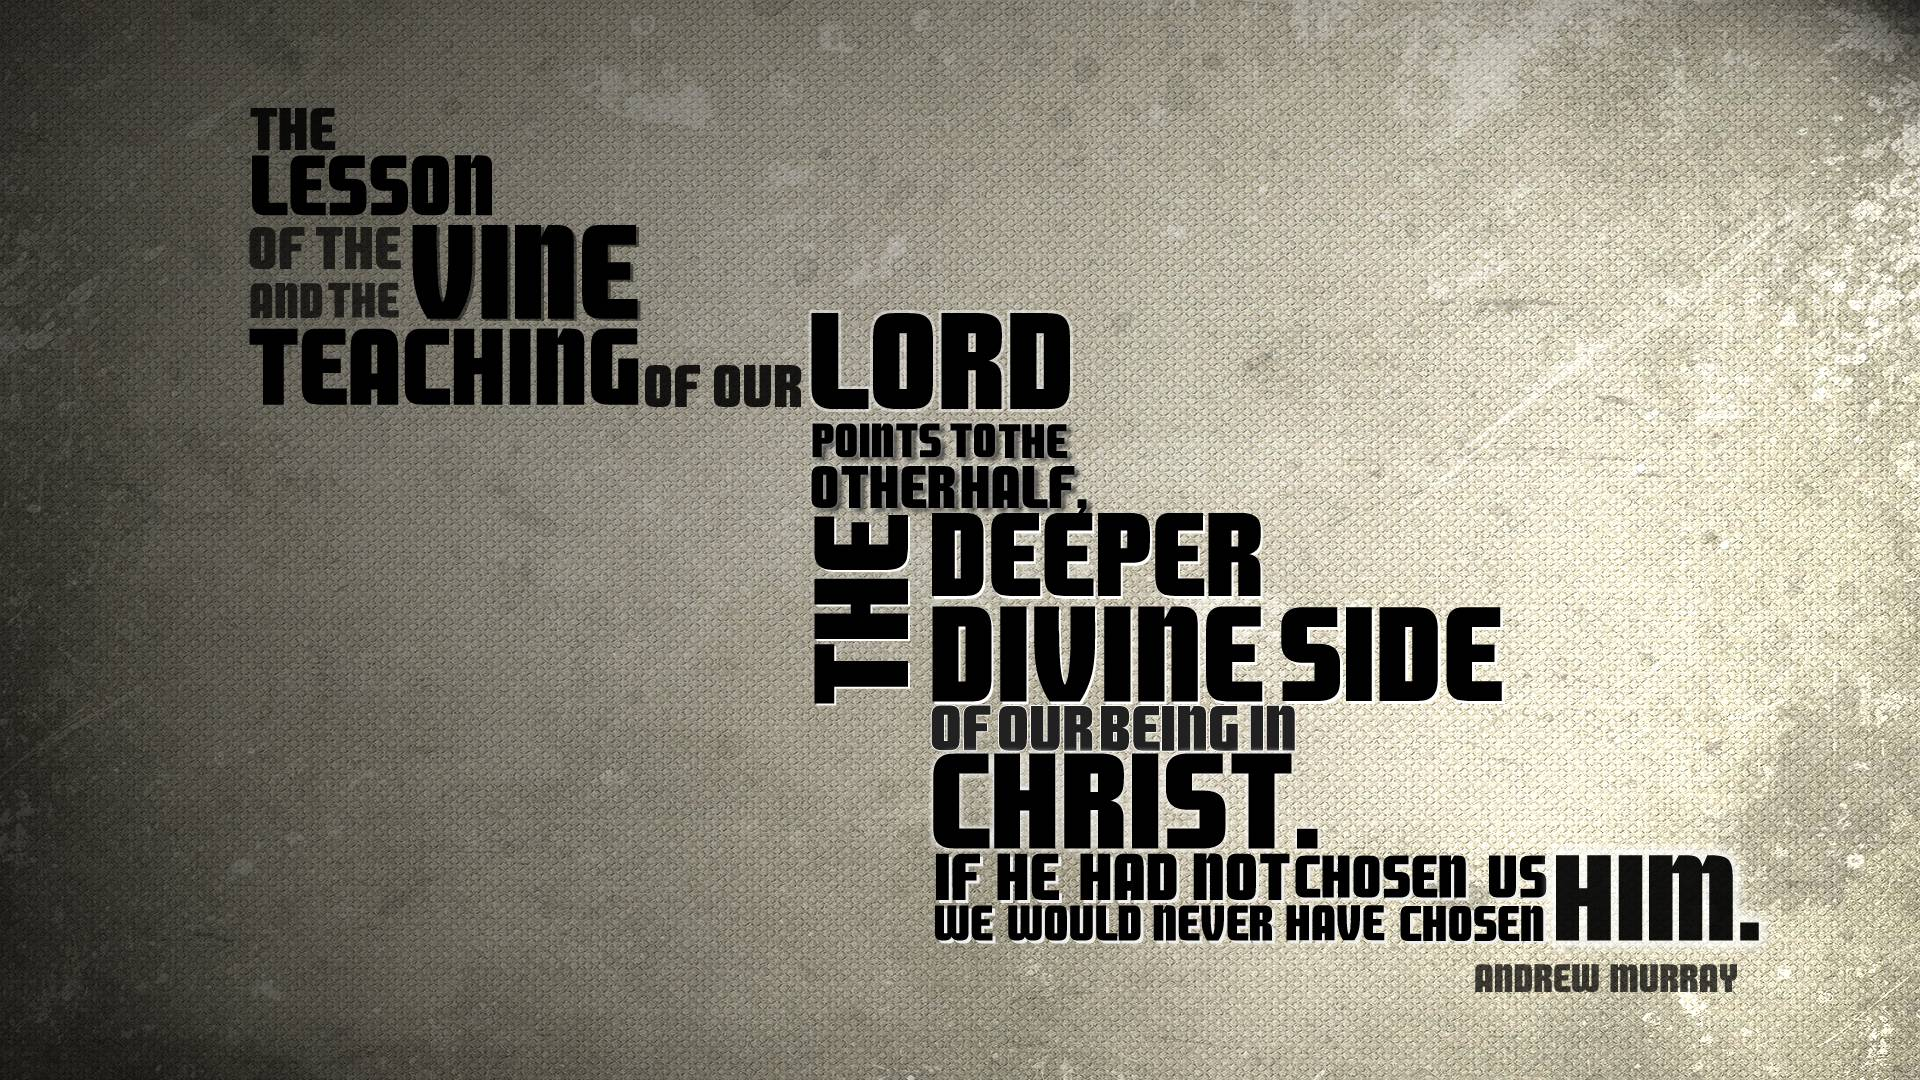 Christian quotes wallpapers wallpaper cave - Full hd christian wallpaper ...